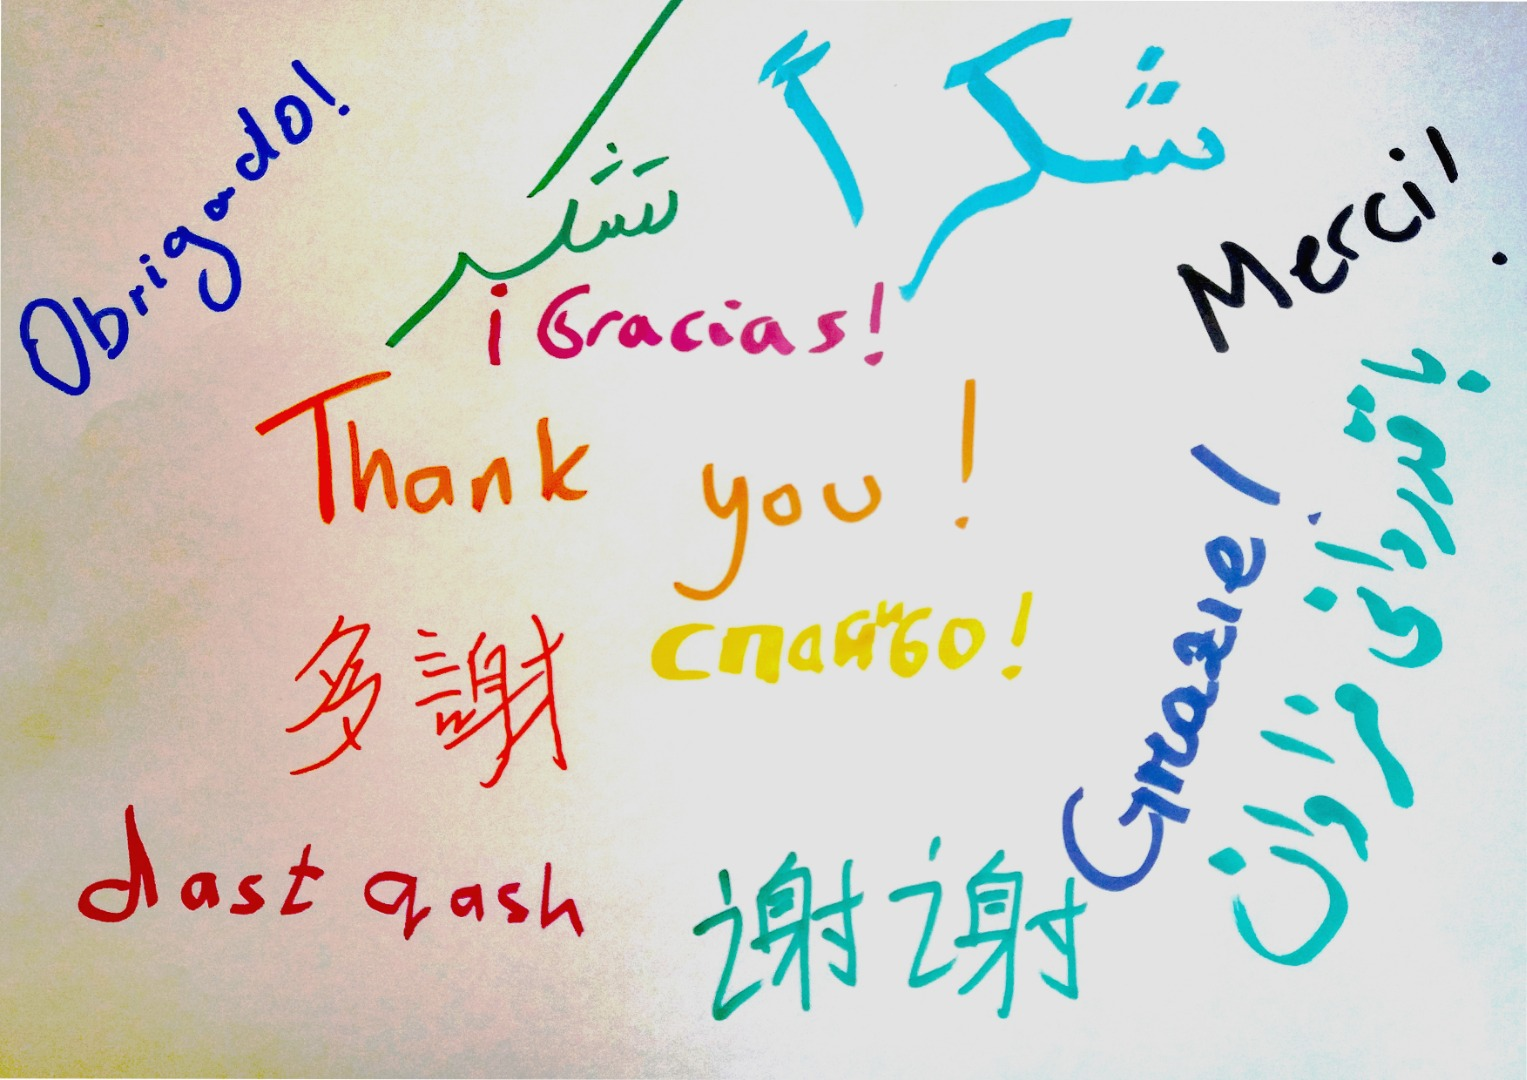 Thank you for your kind donation – it will make a difference to the lives of adults learning English in Glasgow.  Your donation will help create a welcoming learning environment so adults can develop their language skills and confidence to live fulfilling lives in Scotland.